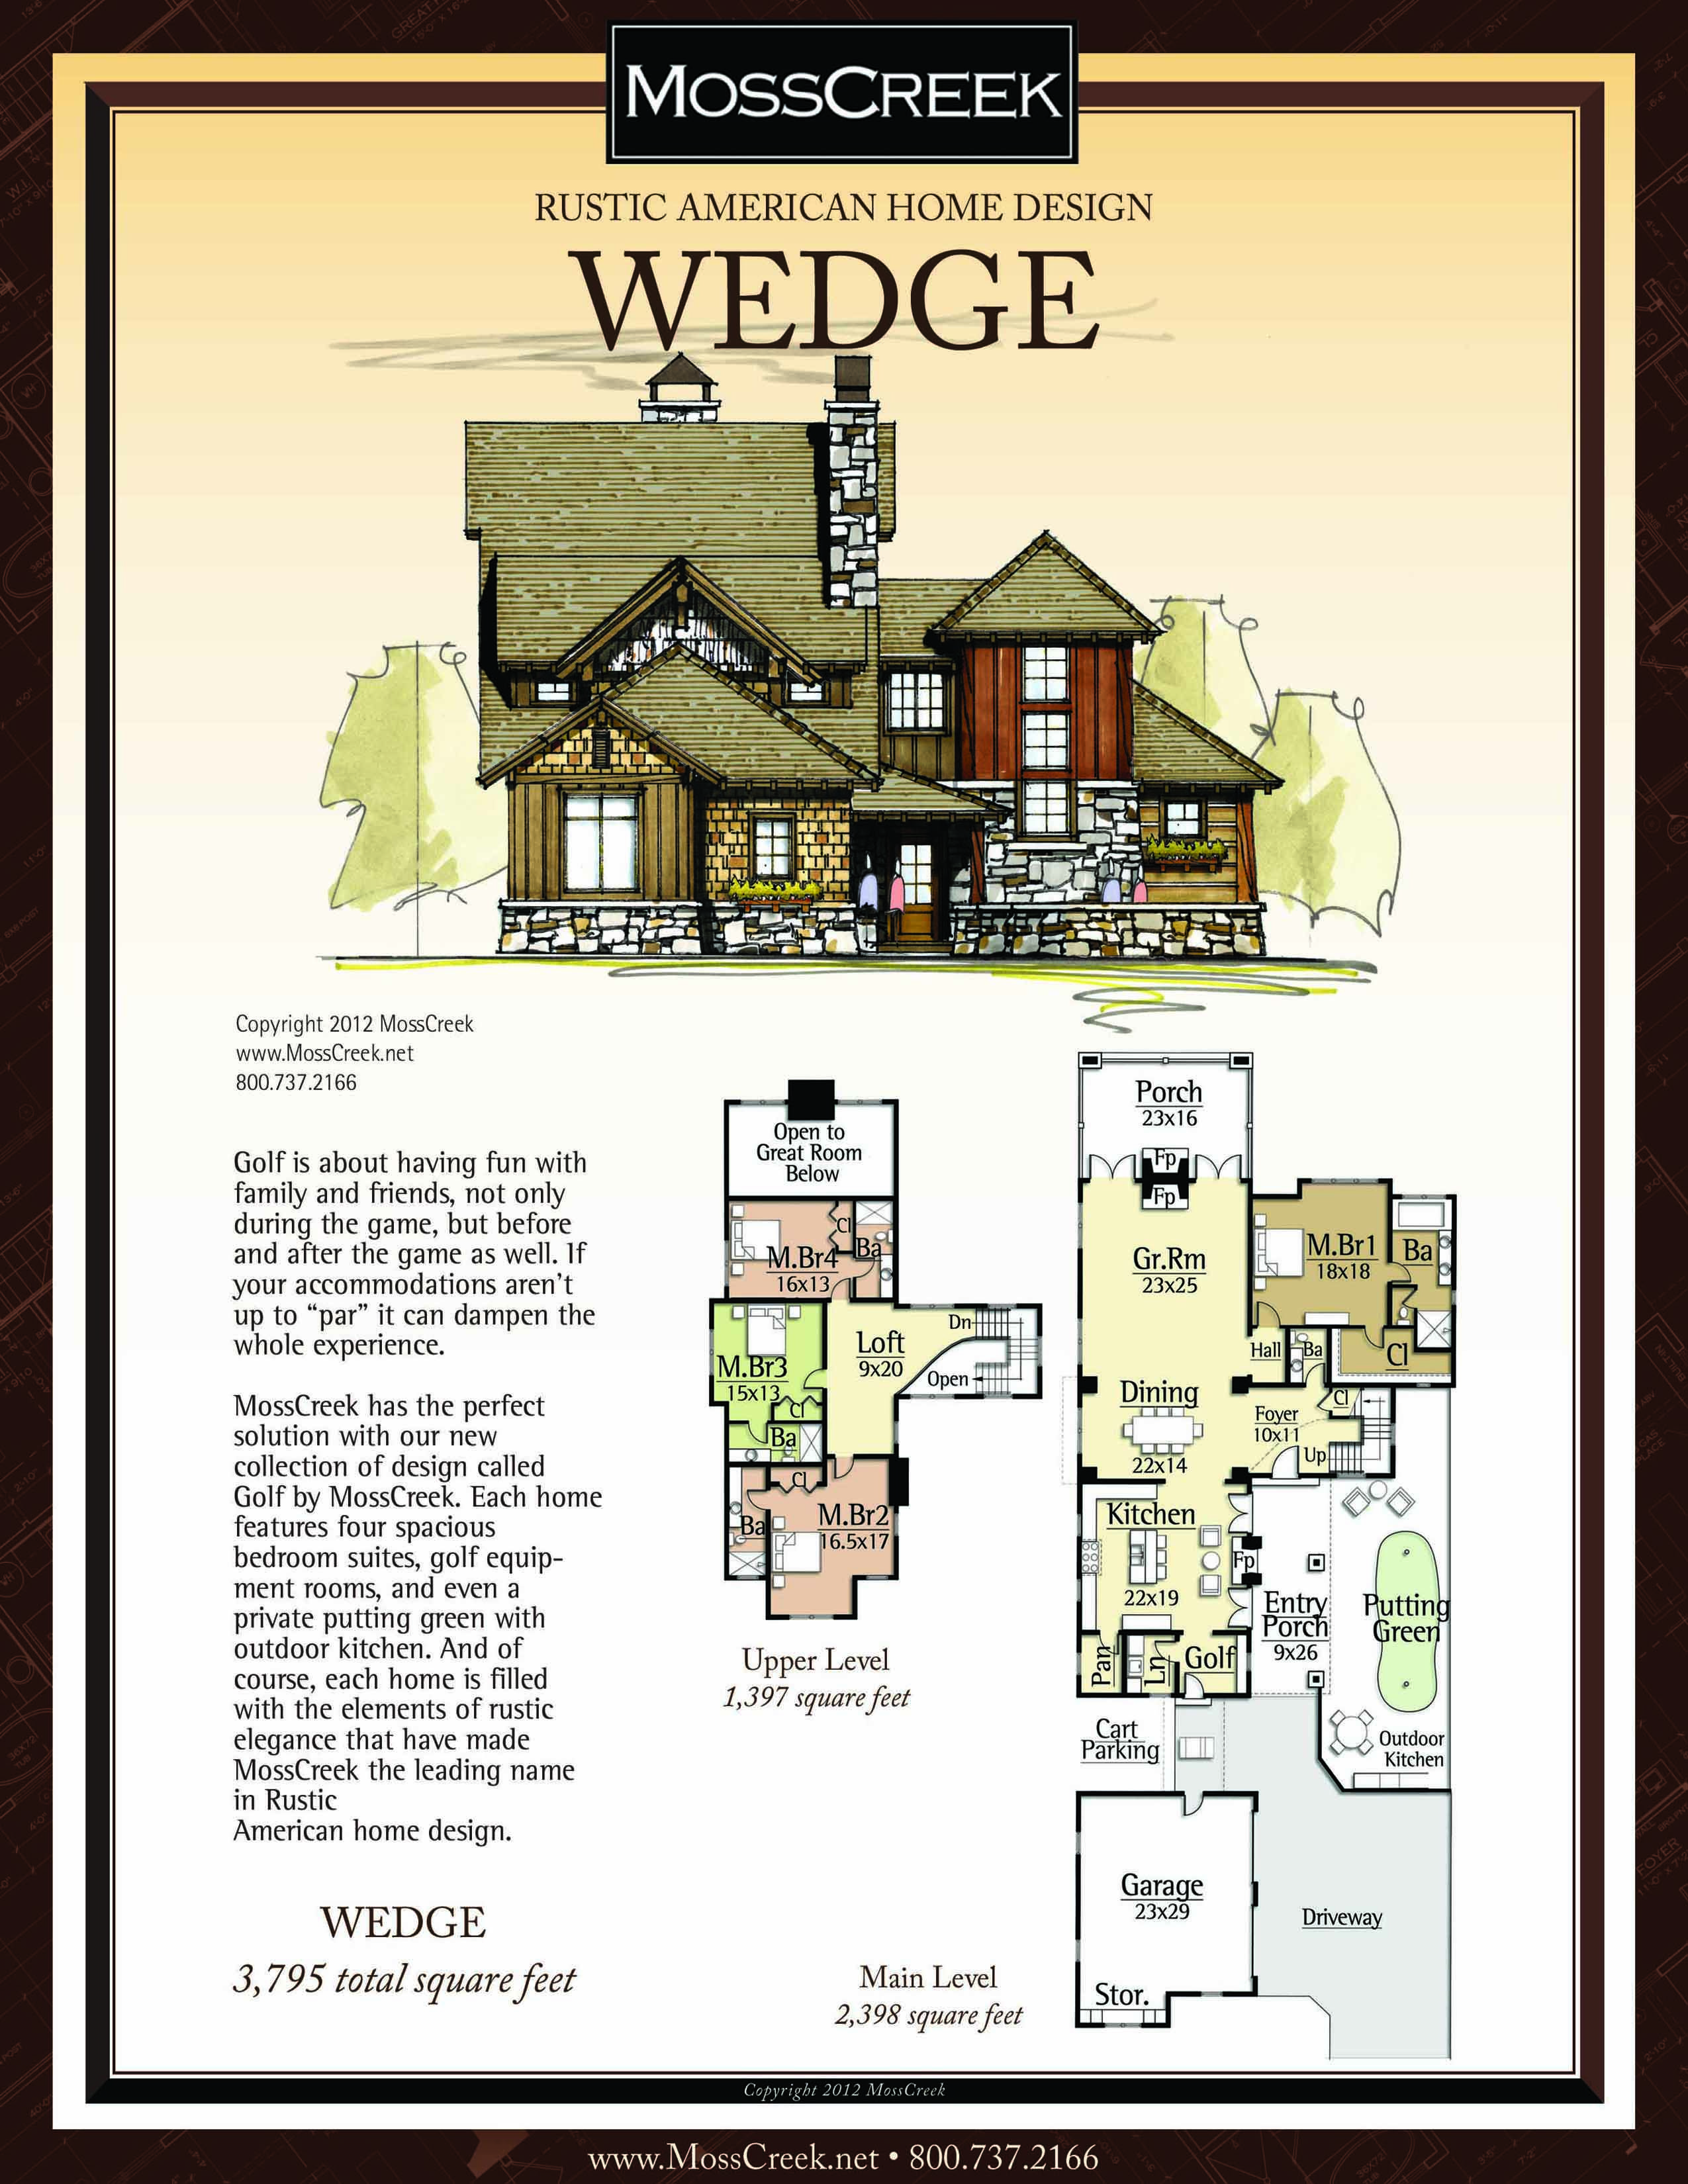 A Ready To Purchase 3795 Sf Home Plan From Mosscreek